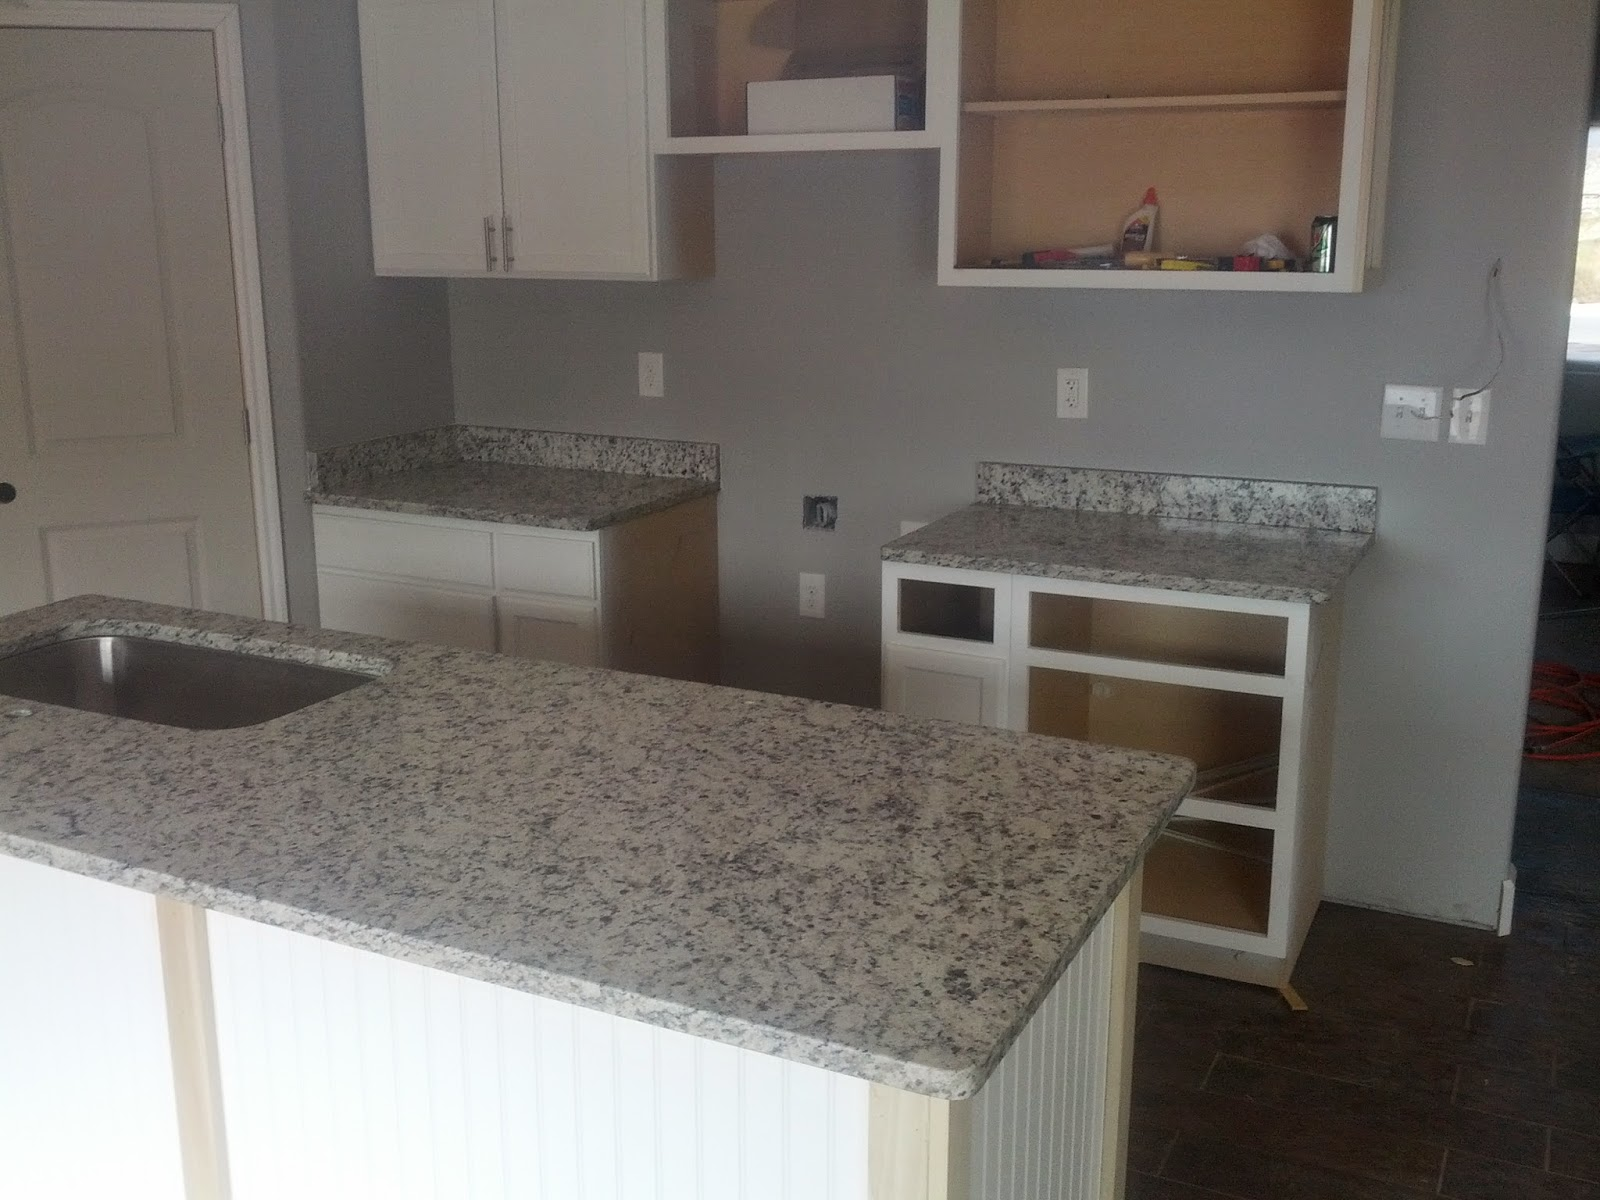 The dallas white granite looks great with the white cabinets and the